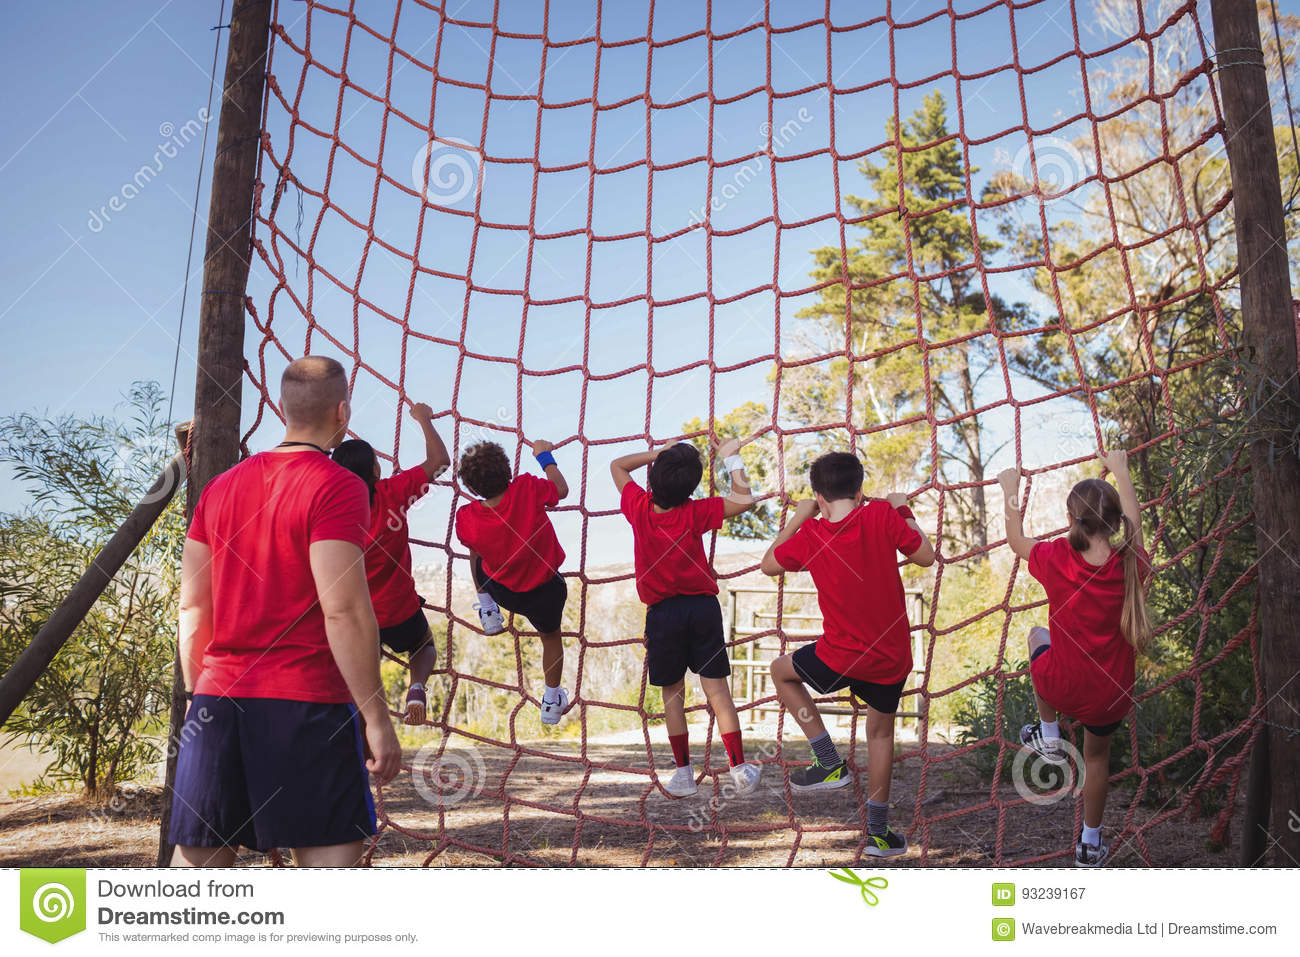 trainer instructing kids in net climbing during obstacle course